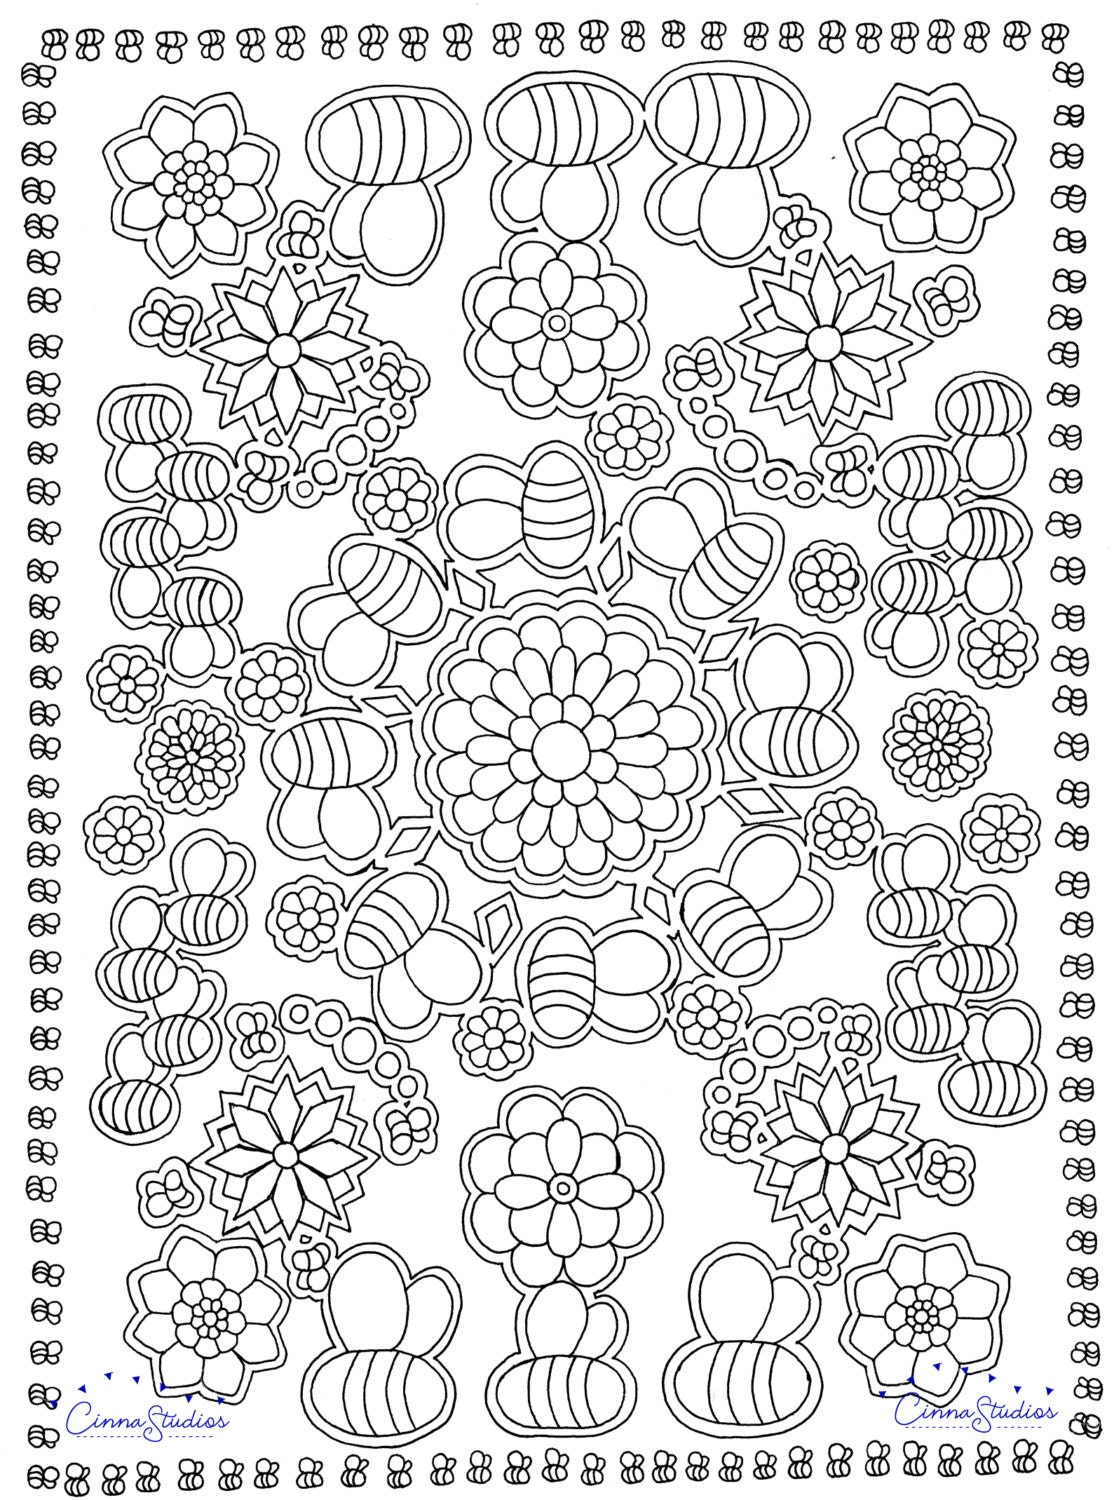 coloring page download relaxing art bees u0026 nature